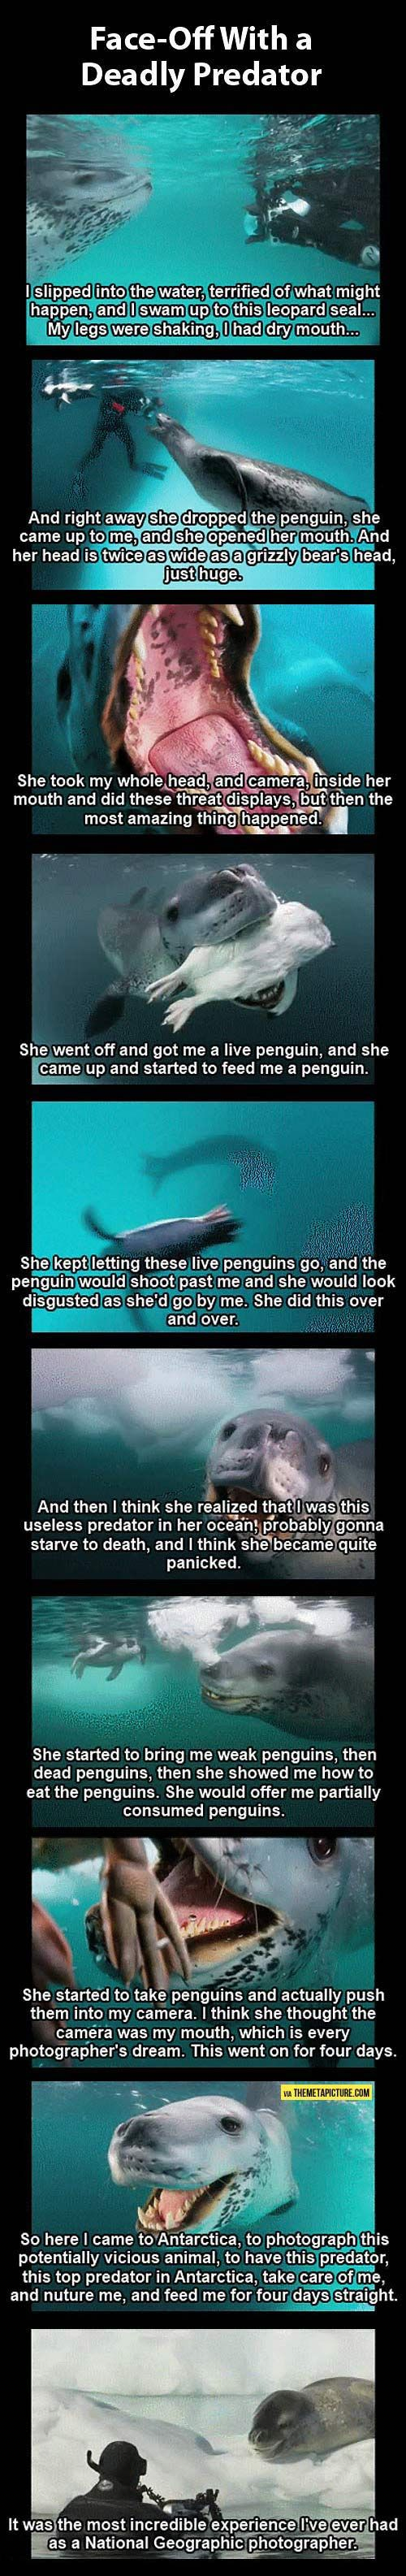 Best nature photo story ever.